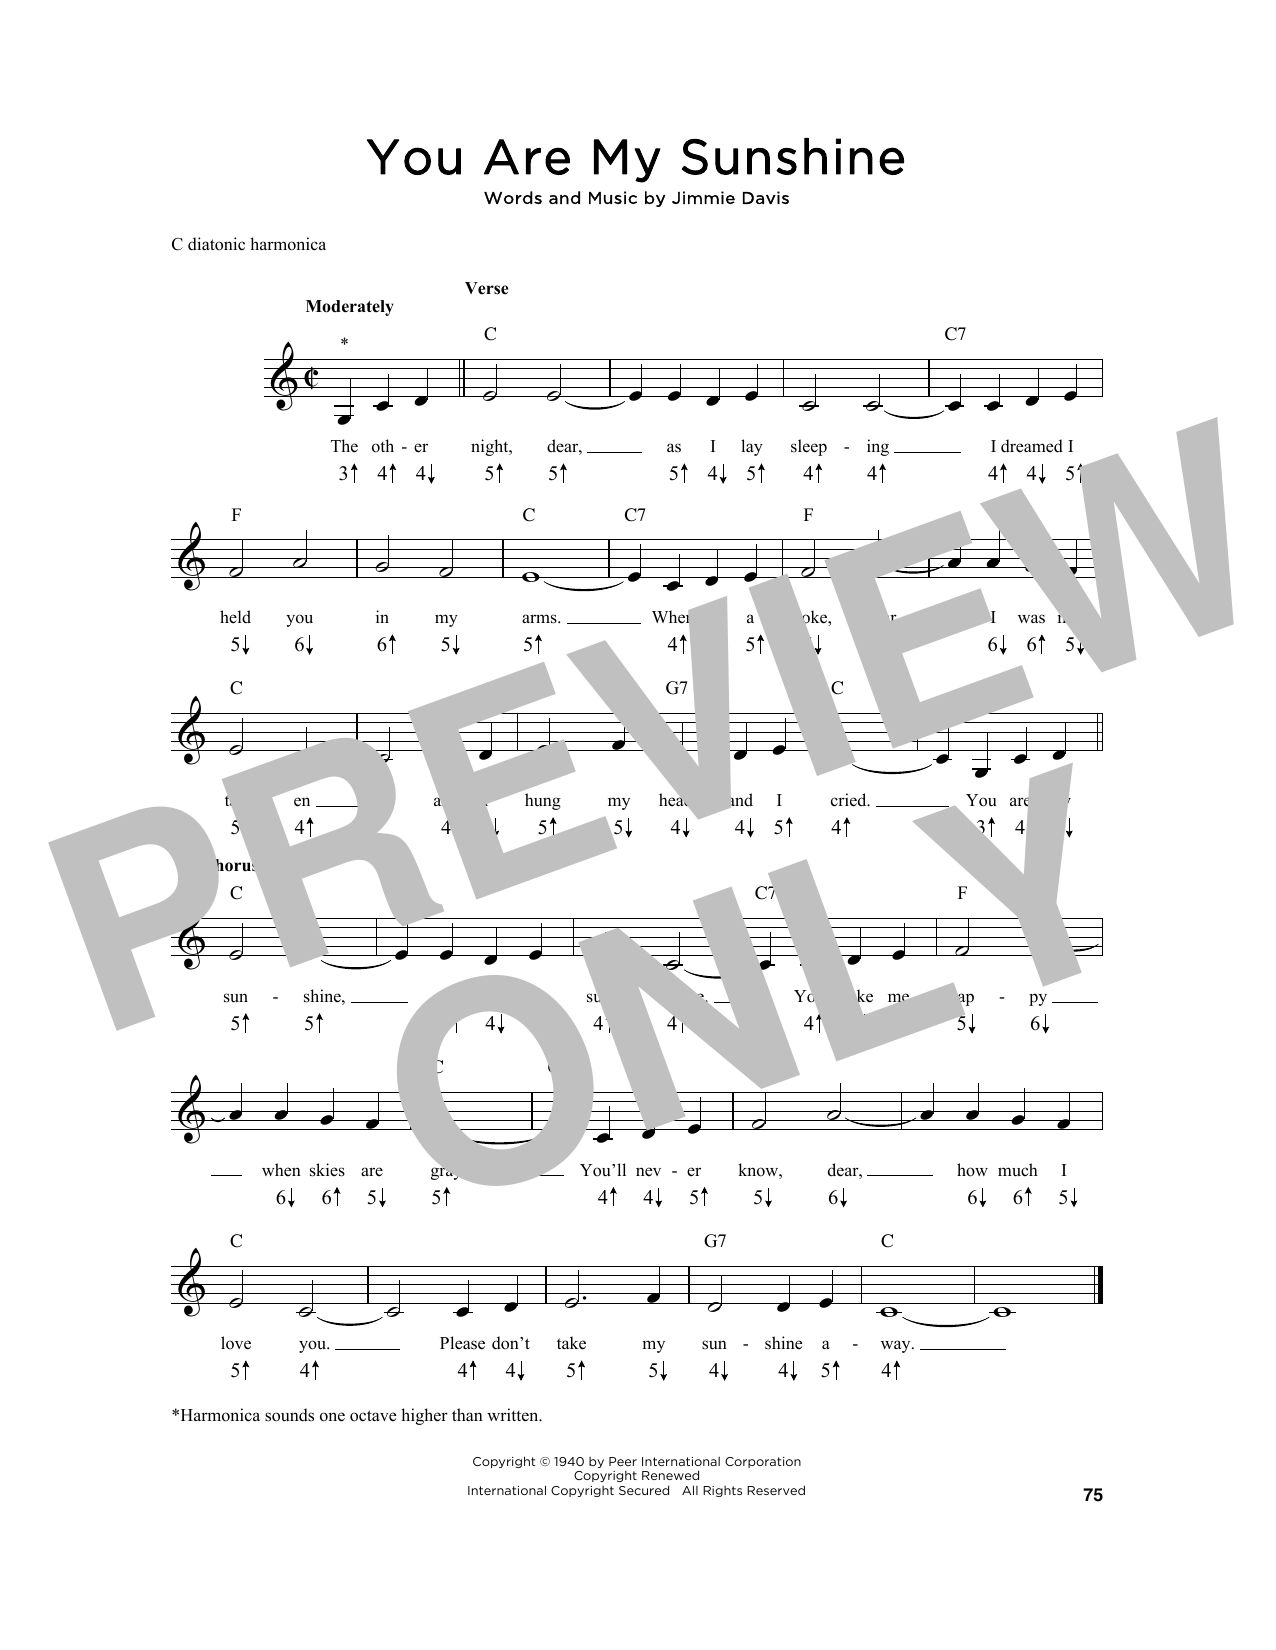 Jimmie Davis You Are My Sunshine Sheet Music Notes Chords